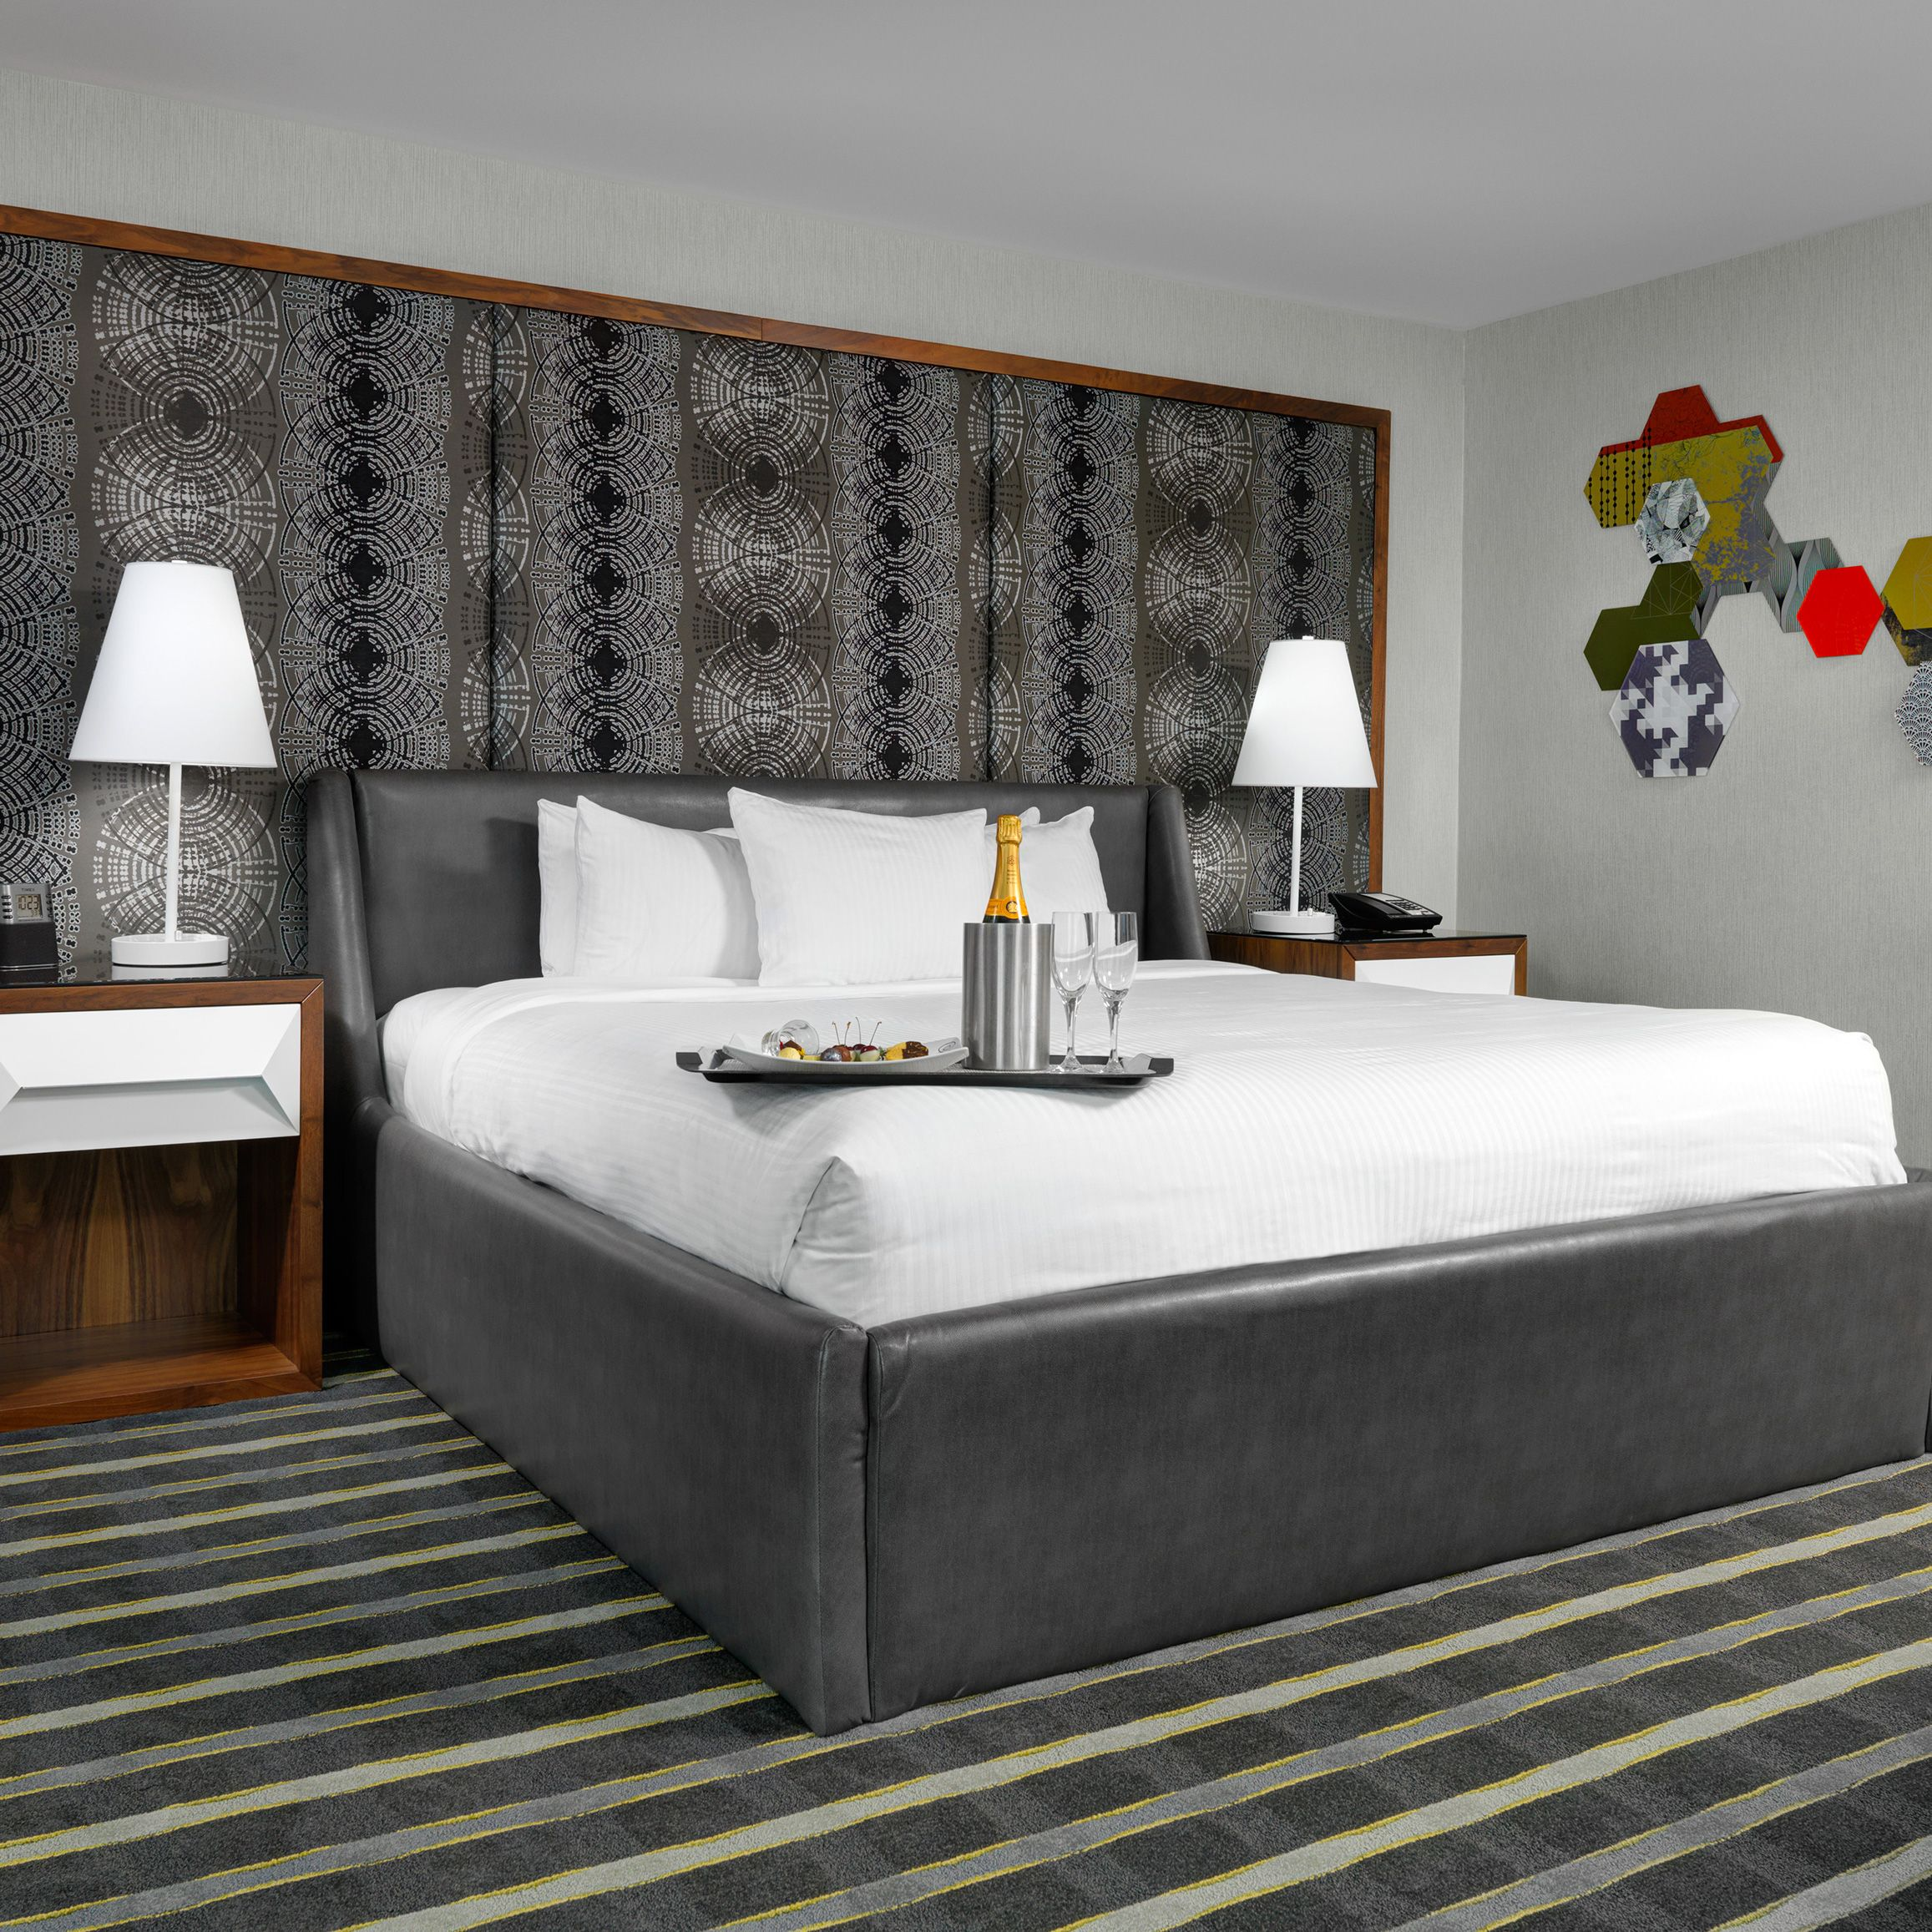 Farmboy Fine Arts Are International Art Consultants Who Also Build Site Specific Custom Artwork And Design Elements For Hospitality Healthcare